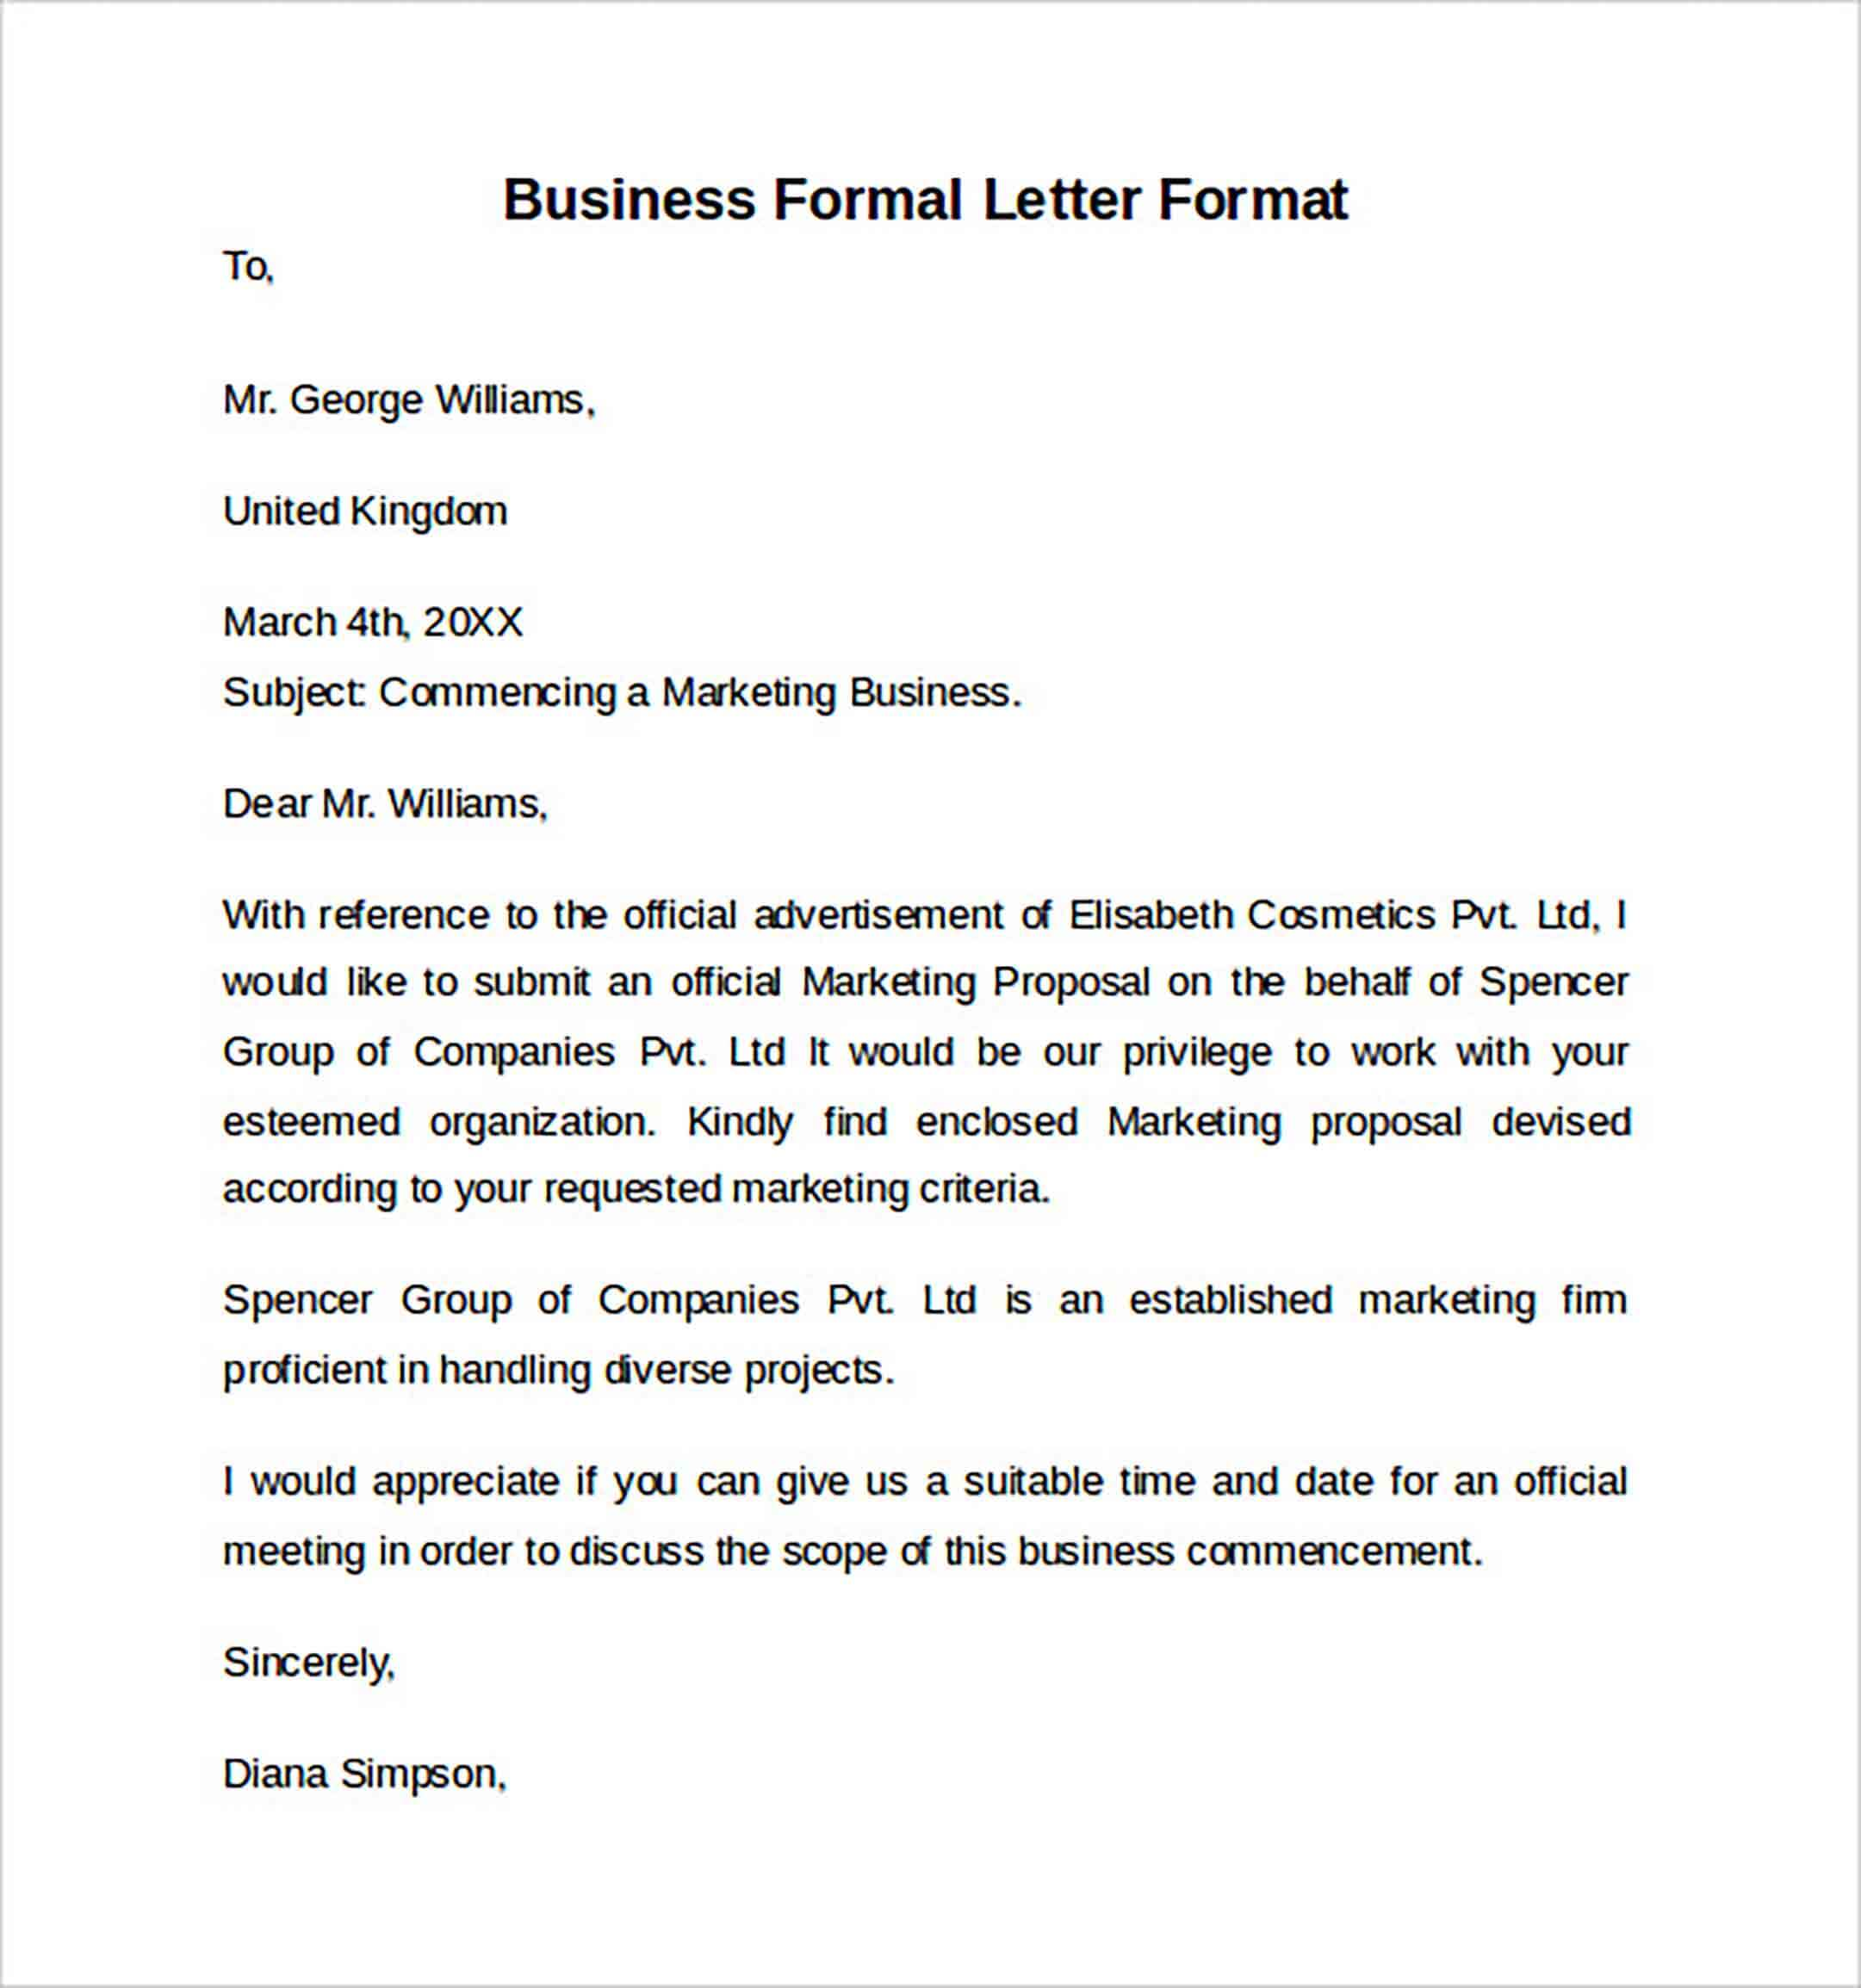 Business Formal Letter Format